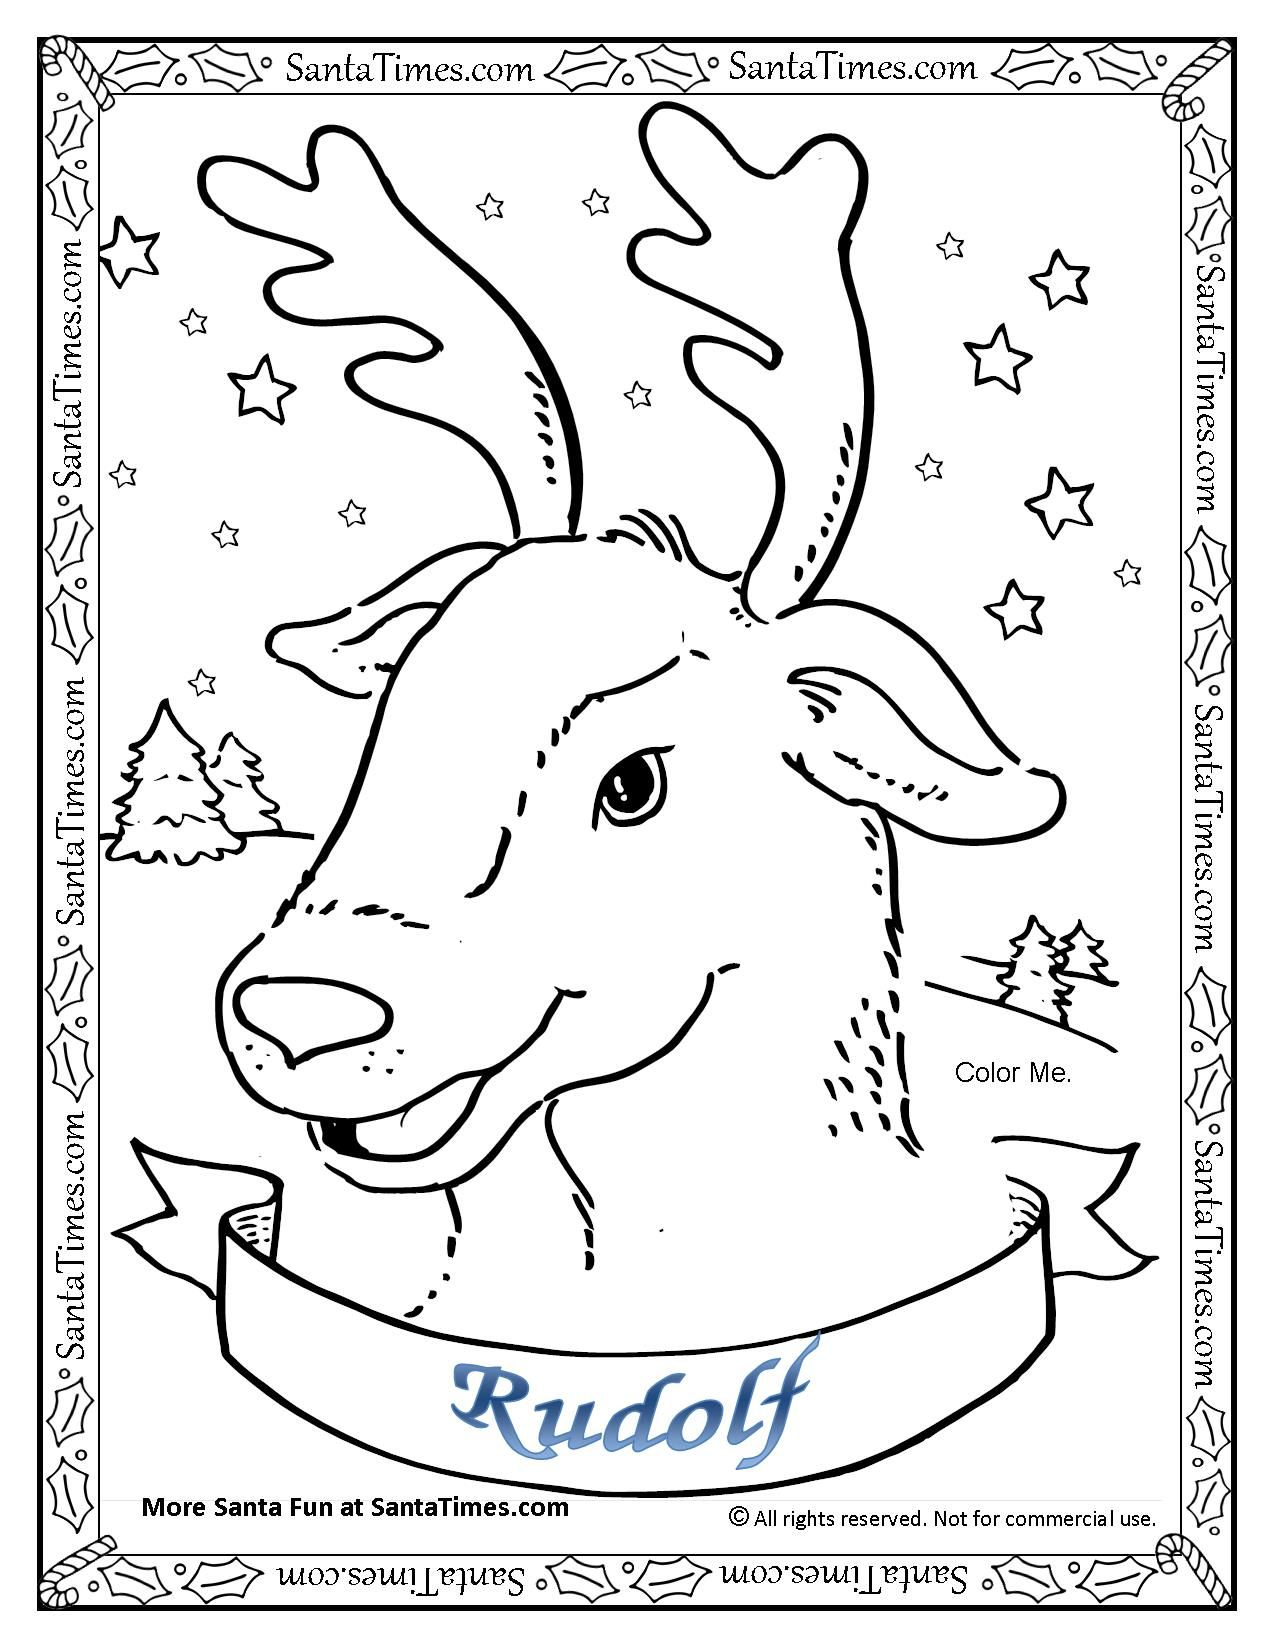 Christmas coloring page printouts - Rudolf The Red Nosed Reindeer Coloring Page Printout More Fun Holiday Activities At Santatimes